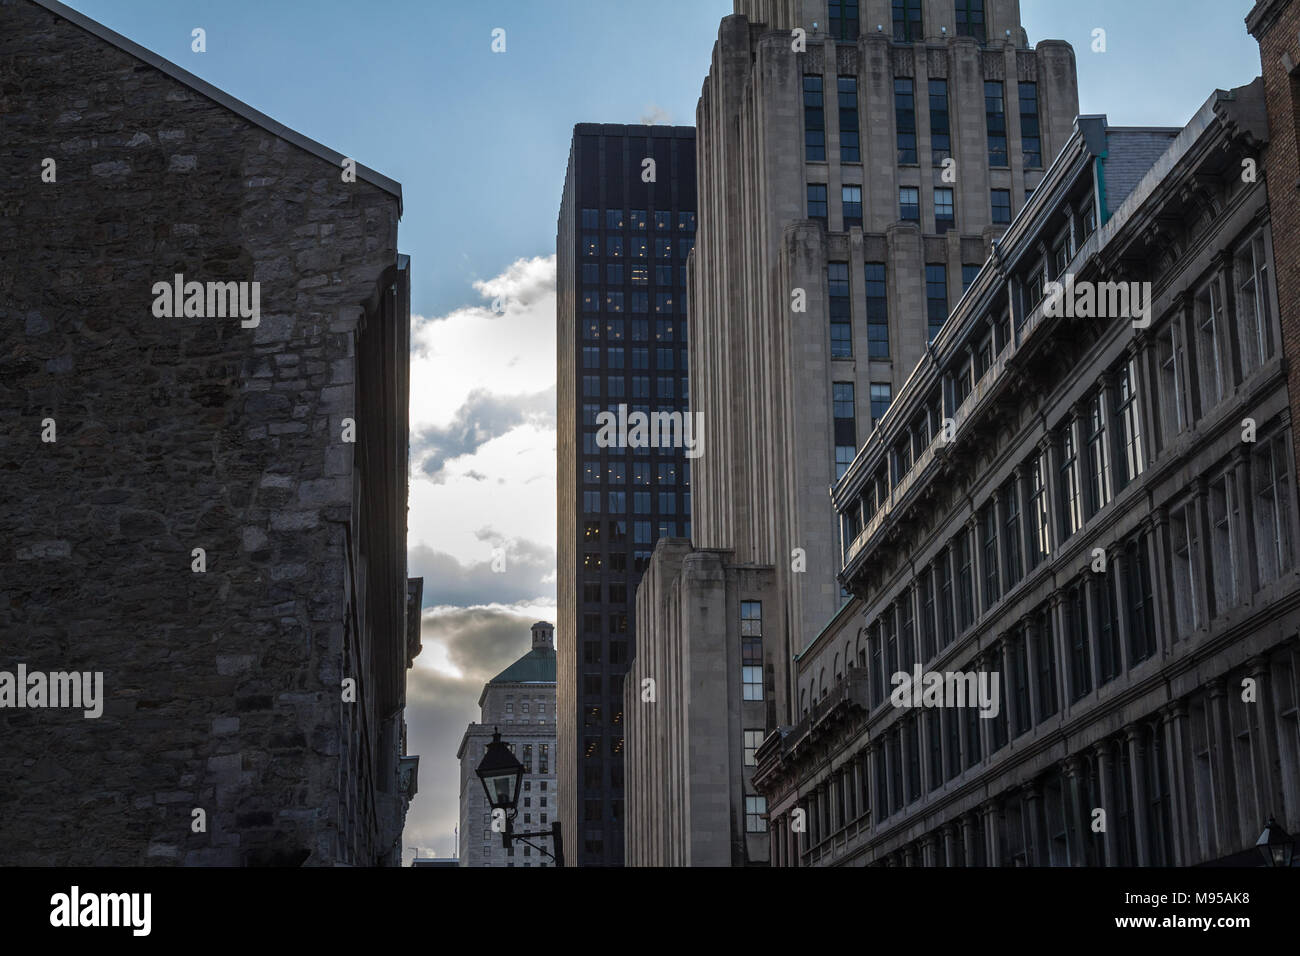 Skyscrapers and older buildings in Old Montreal (Vieux Montreal), Quebec, Canada. Old Montreal is one of the oldest parts of North America, and a majo - Stock Image